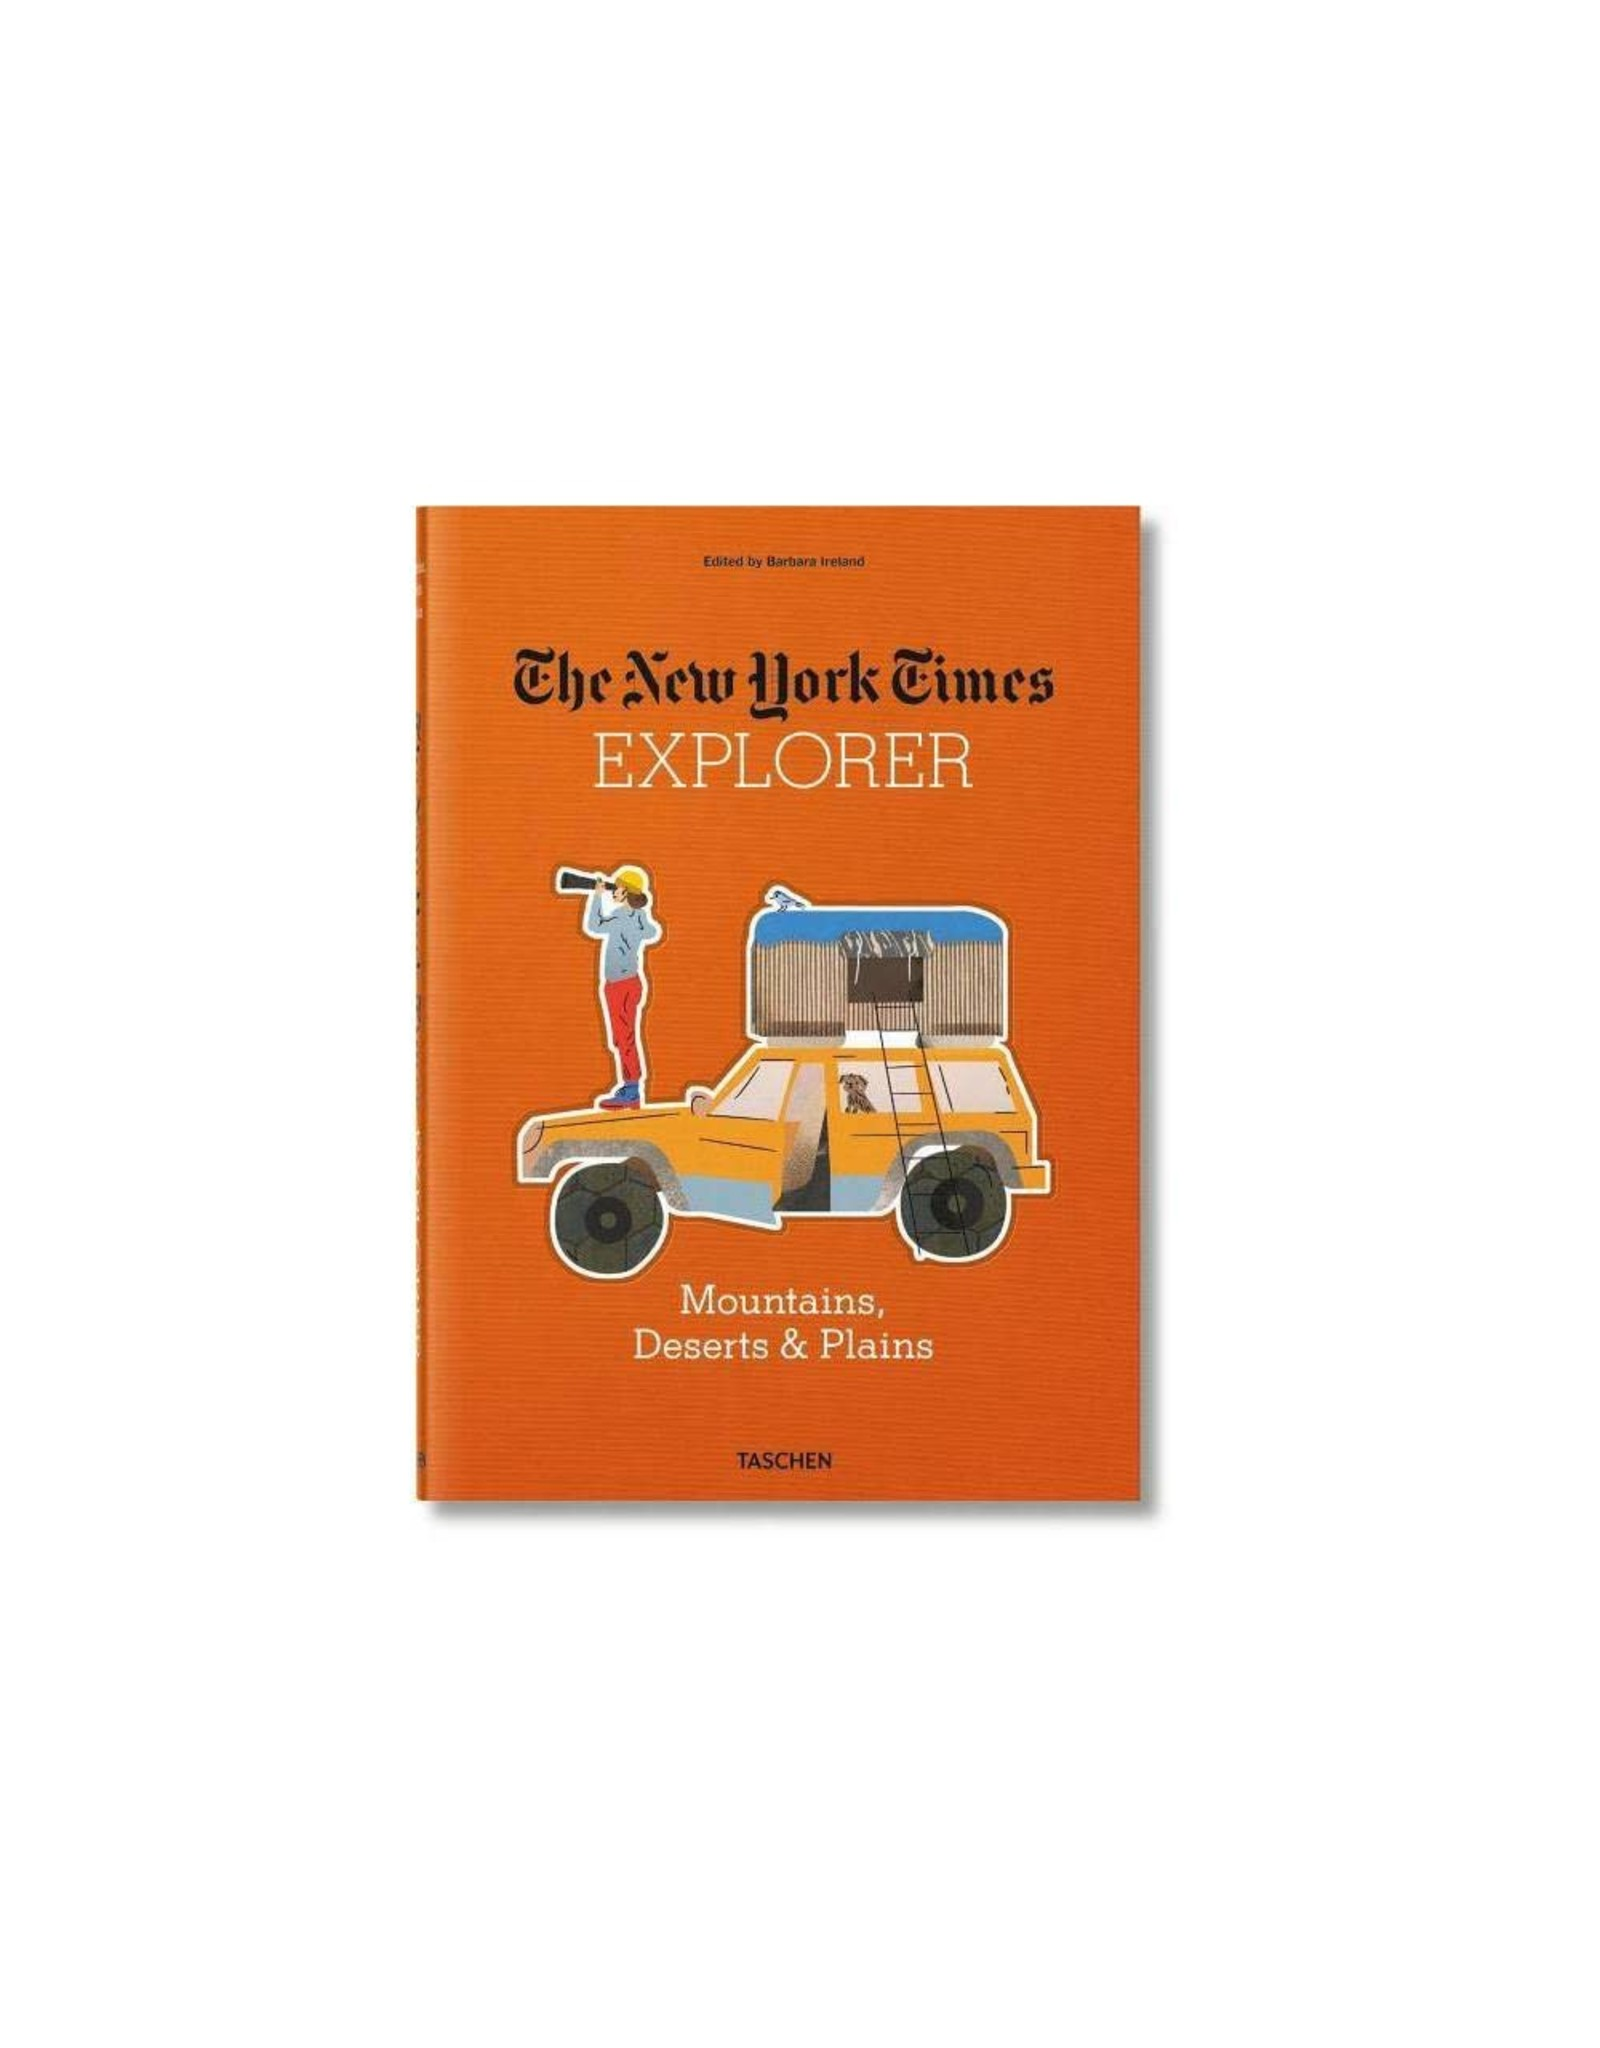 New York Times Explorer: Mountains, Deserts, & Plains